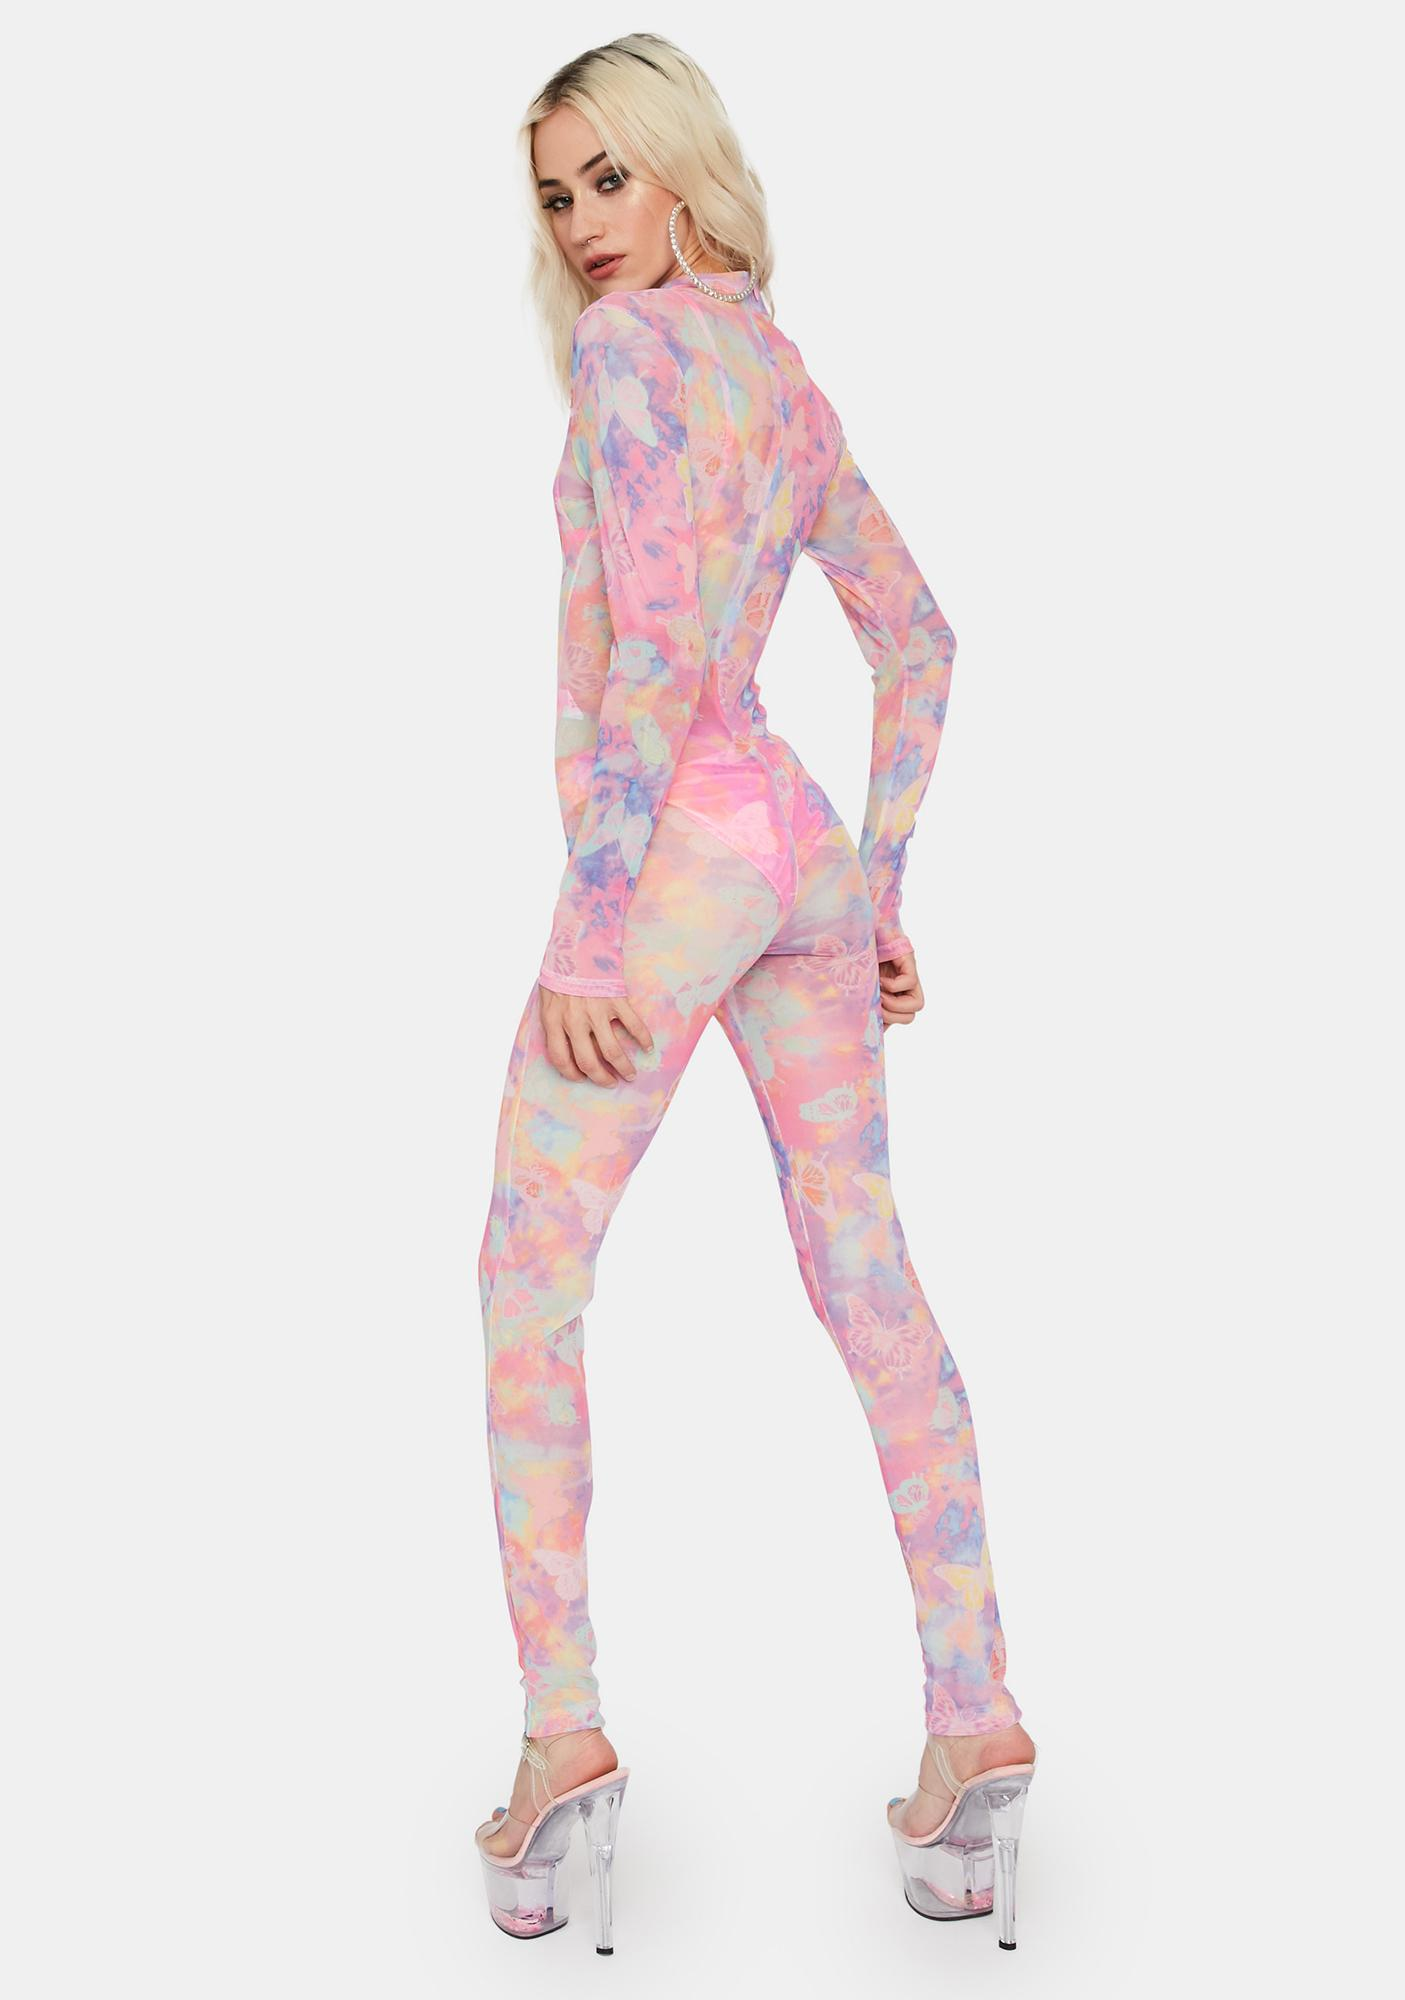 In The Sky With Diamonds Jumpsuit